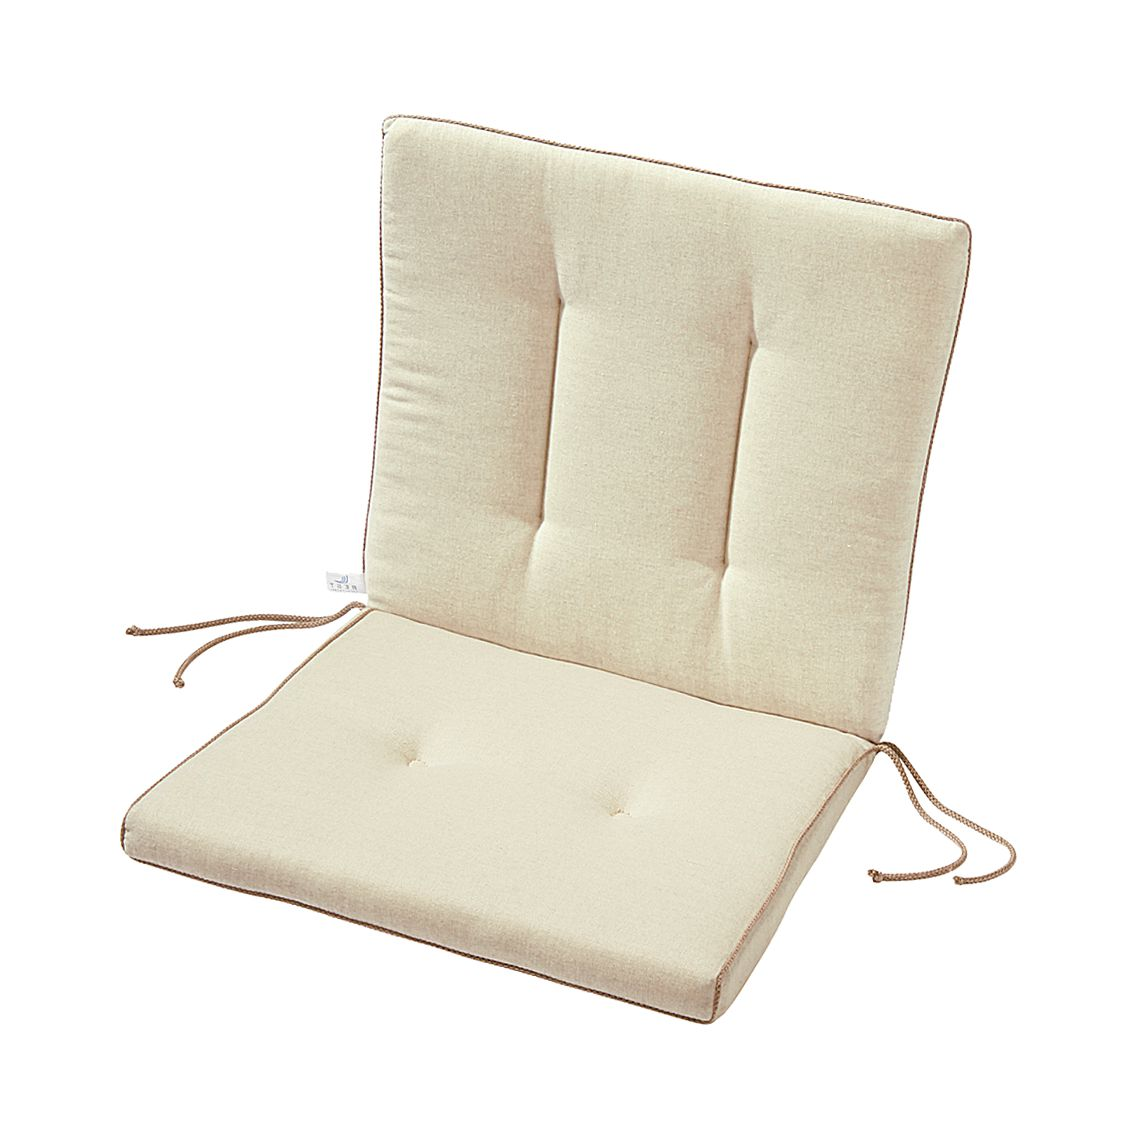 Home 24 - Coussin de chaise antigua - naturel, best freizeitmöbel